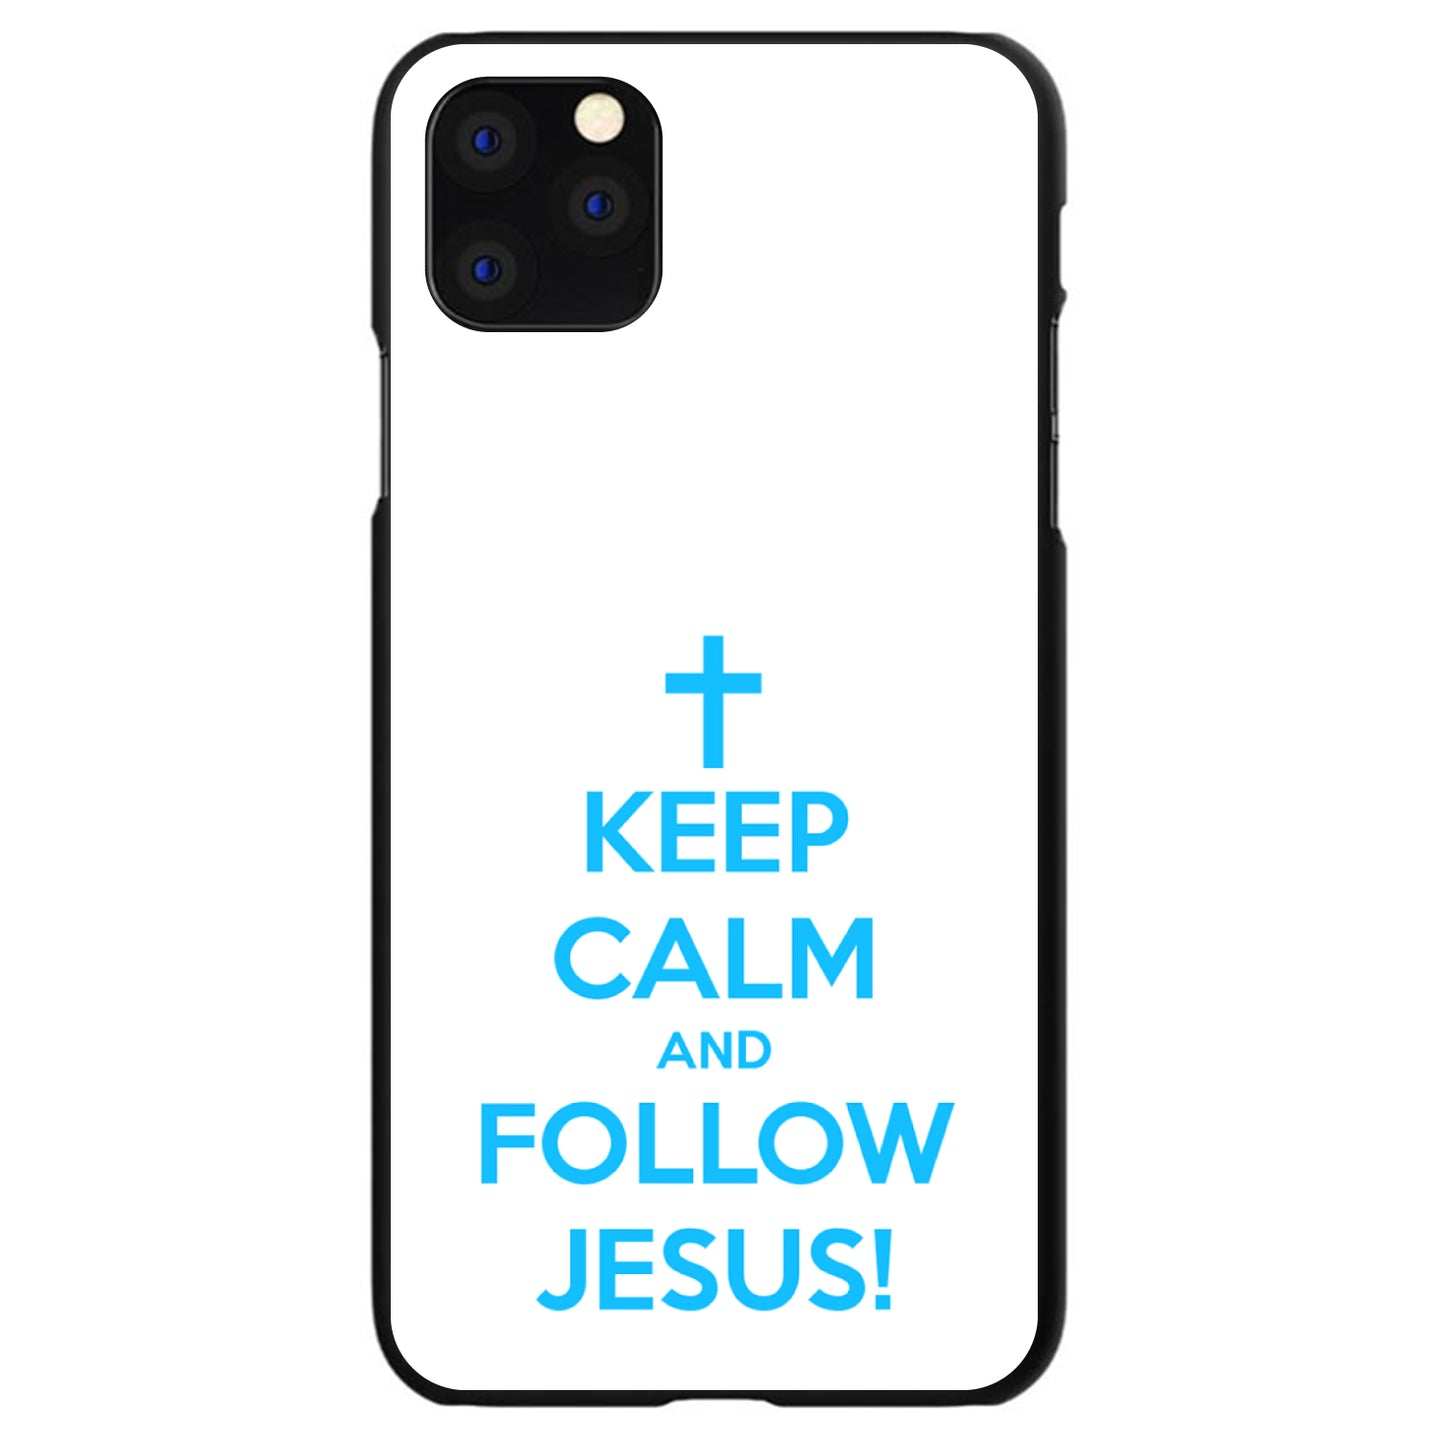 DistinctInk® Hard Plastic Snap-On Case for Apple iPhone - Keep Calm and Follow Jesus